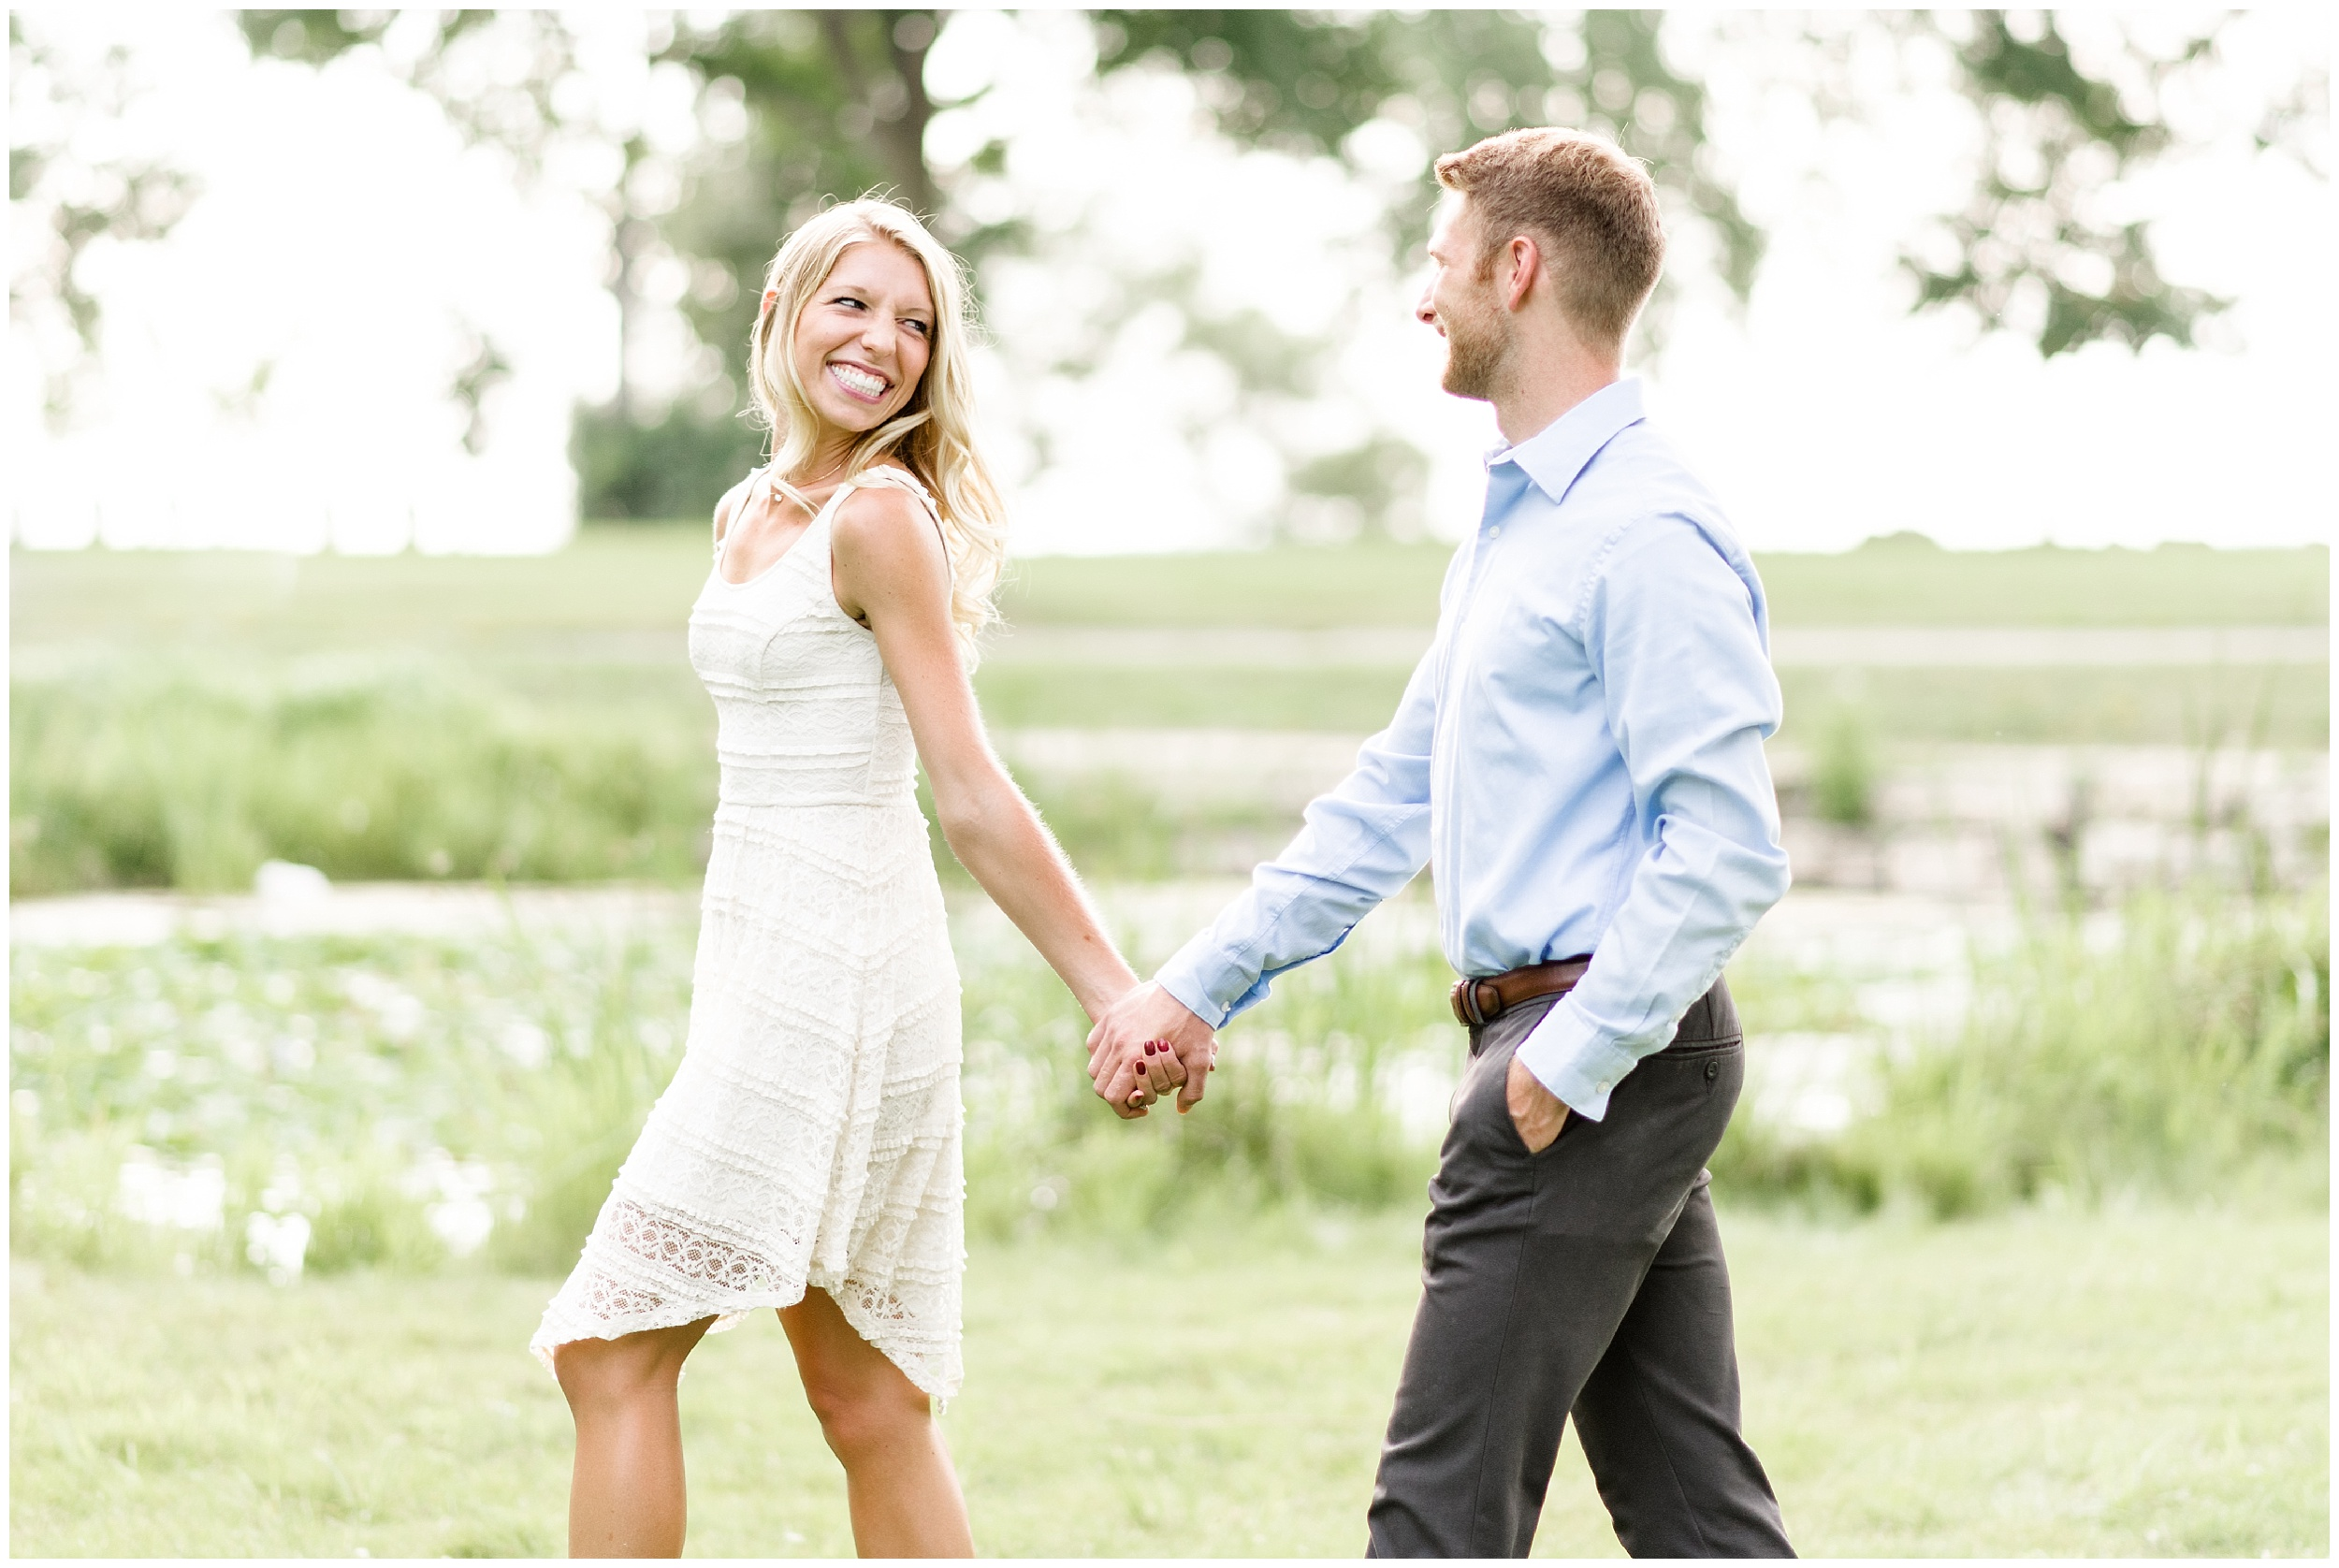 tenney-park-engagement-session-madison-wisconsin-bright-light-airy-wedding-photographer_0018.jpg